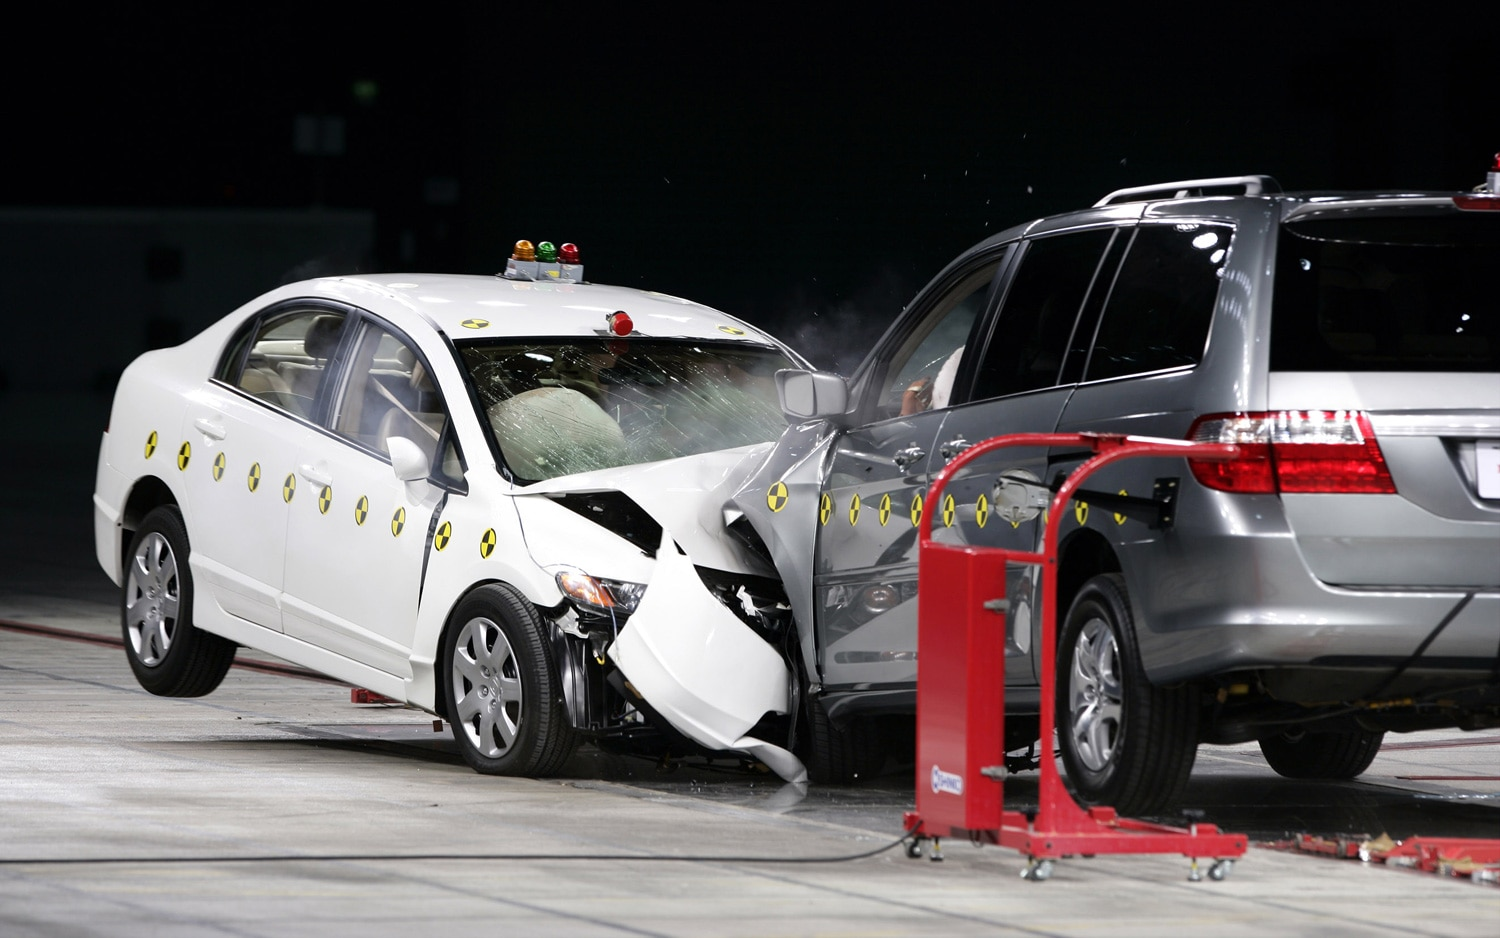 Honda Civic Vs Odyssey Crash Test